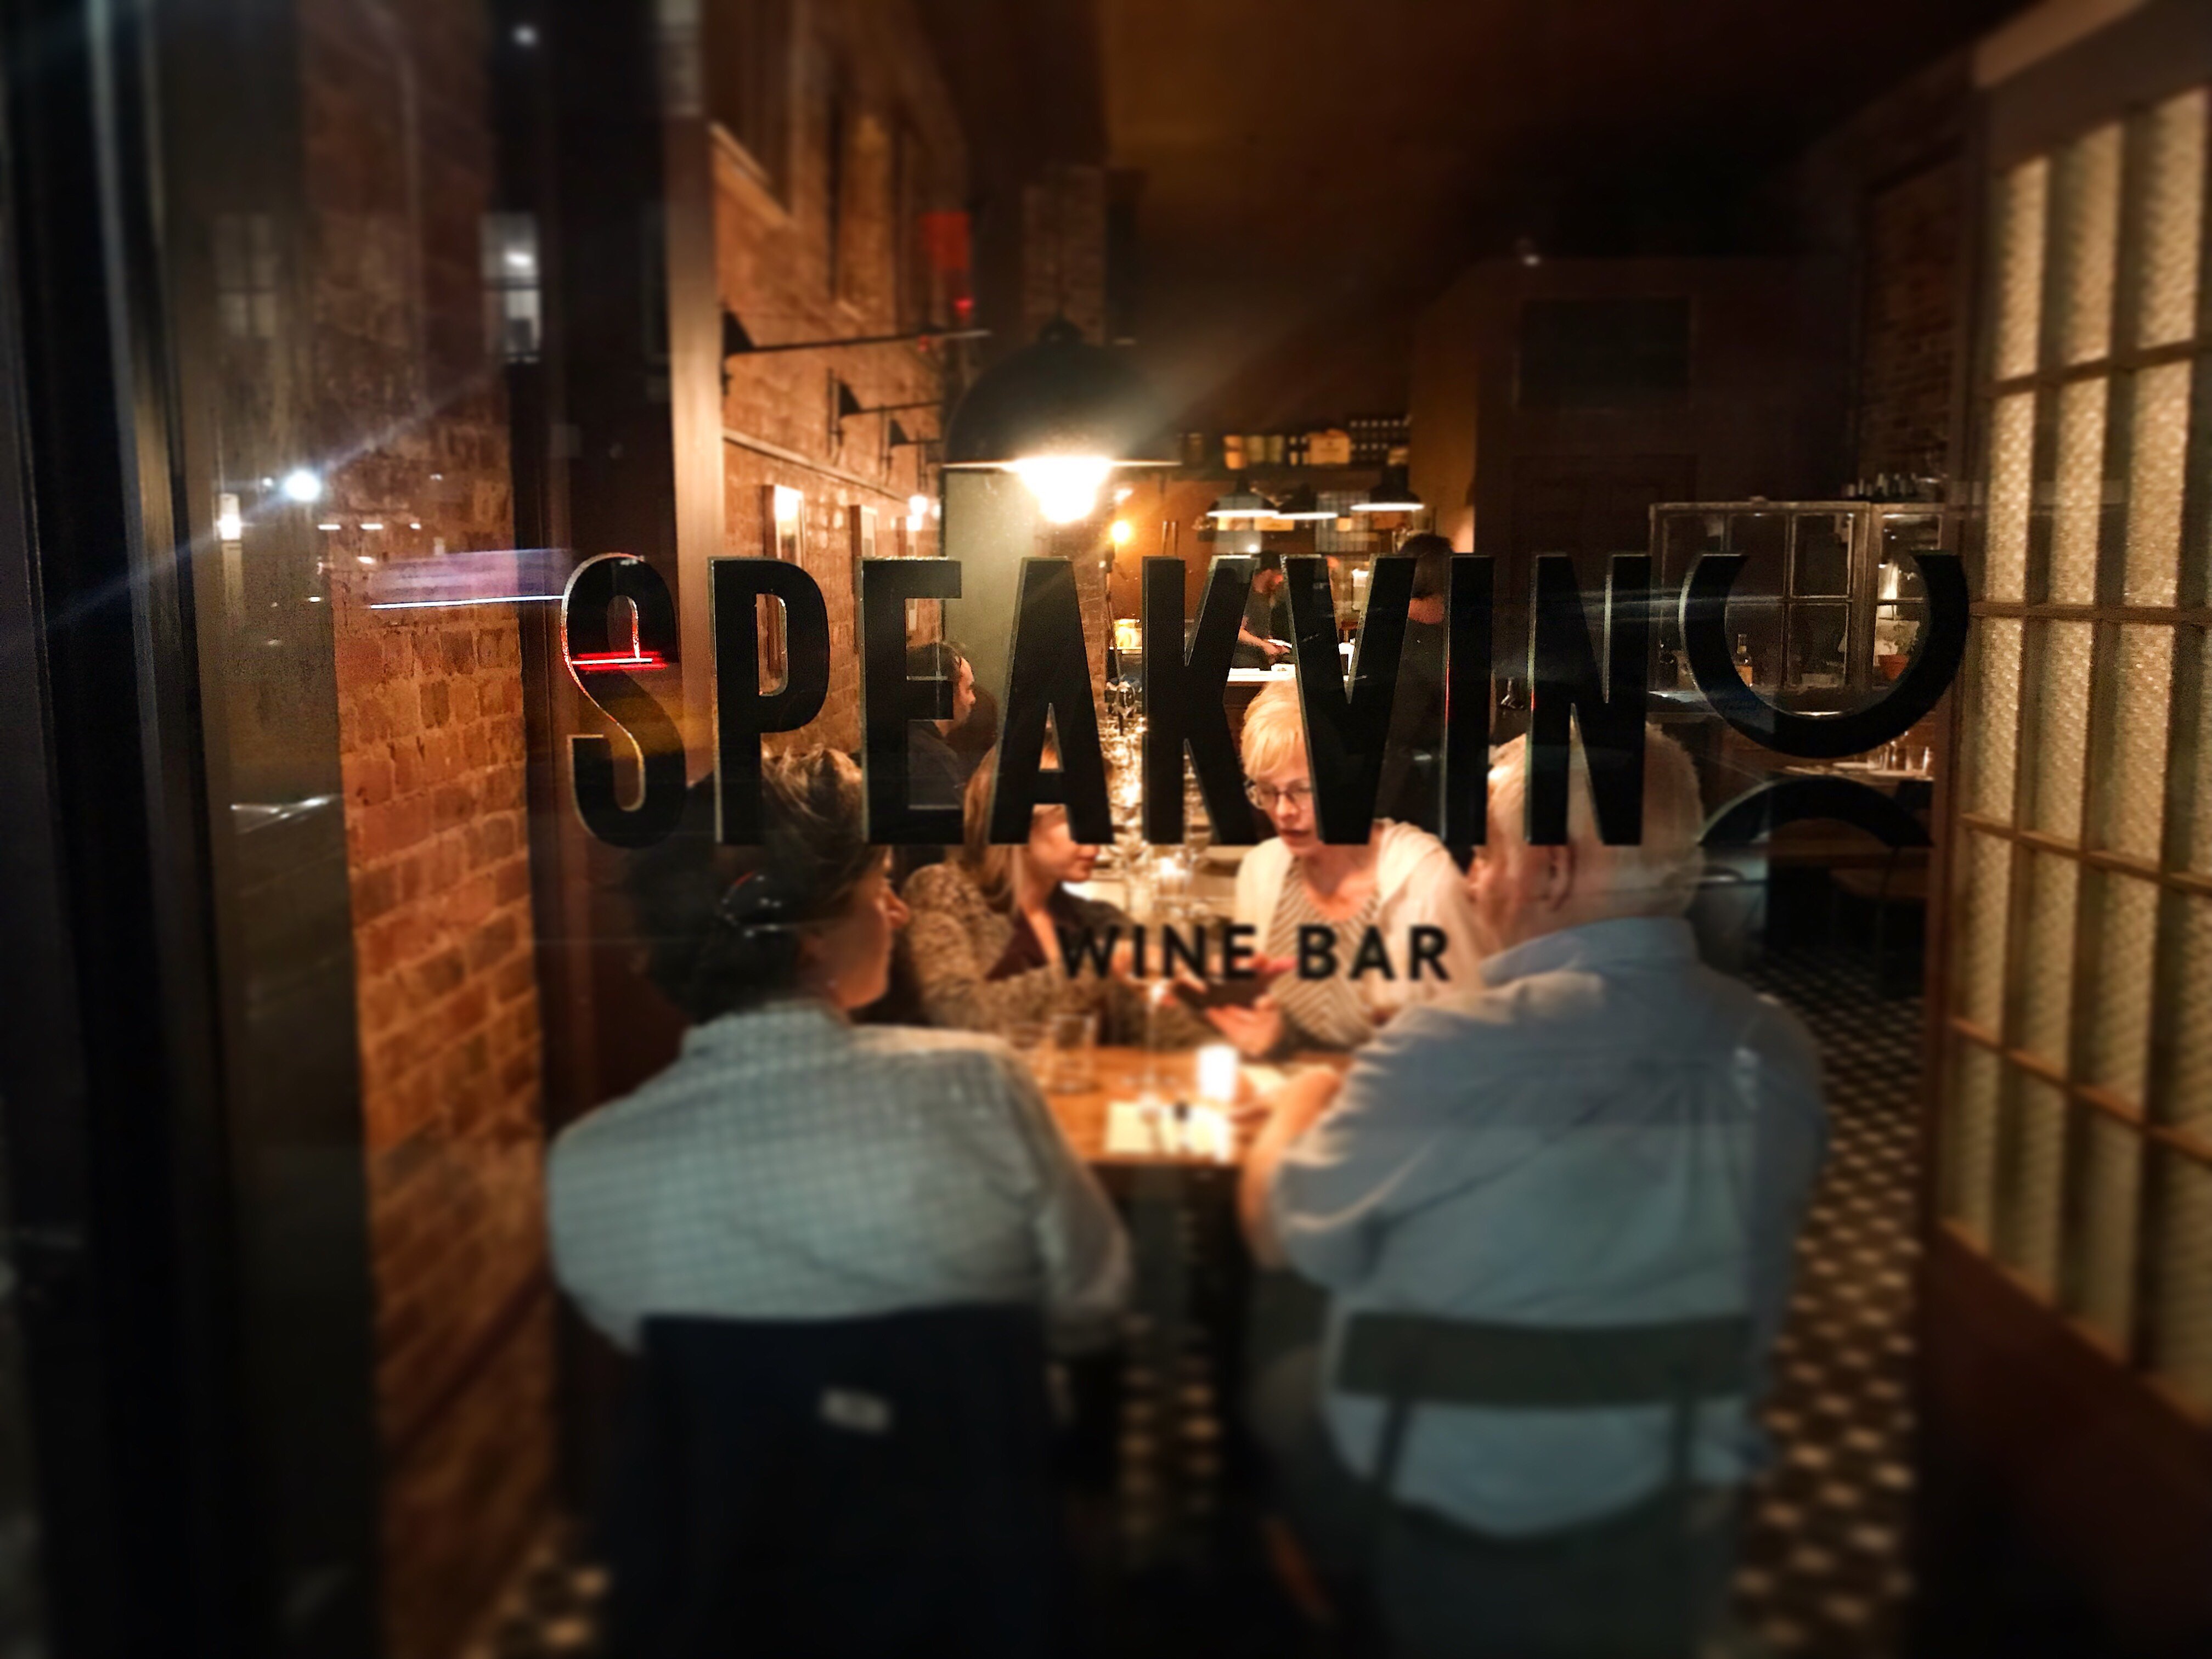 Customers dining at Speakvino, seen through the front window that displays the bar's name